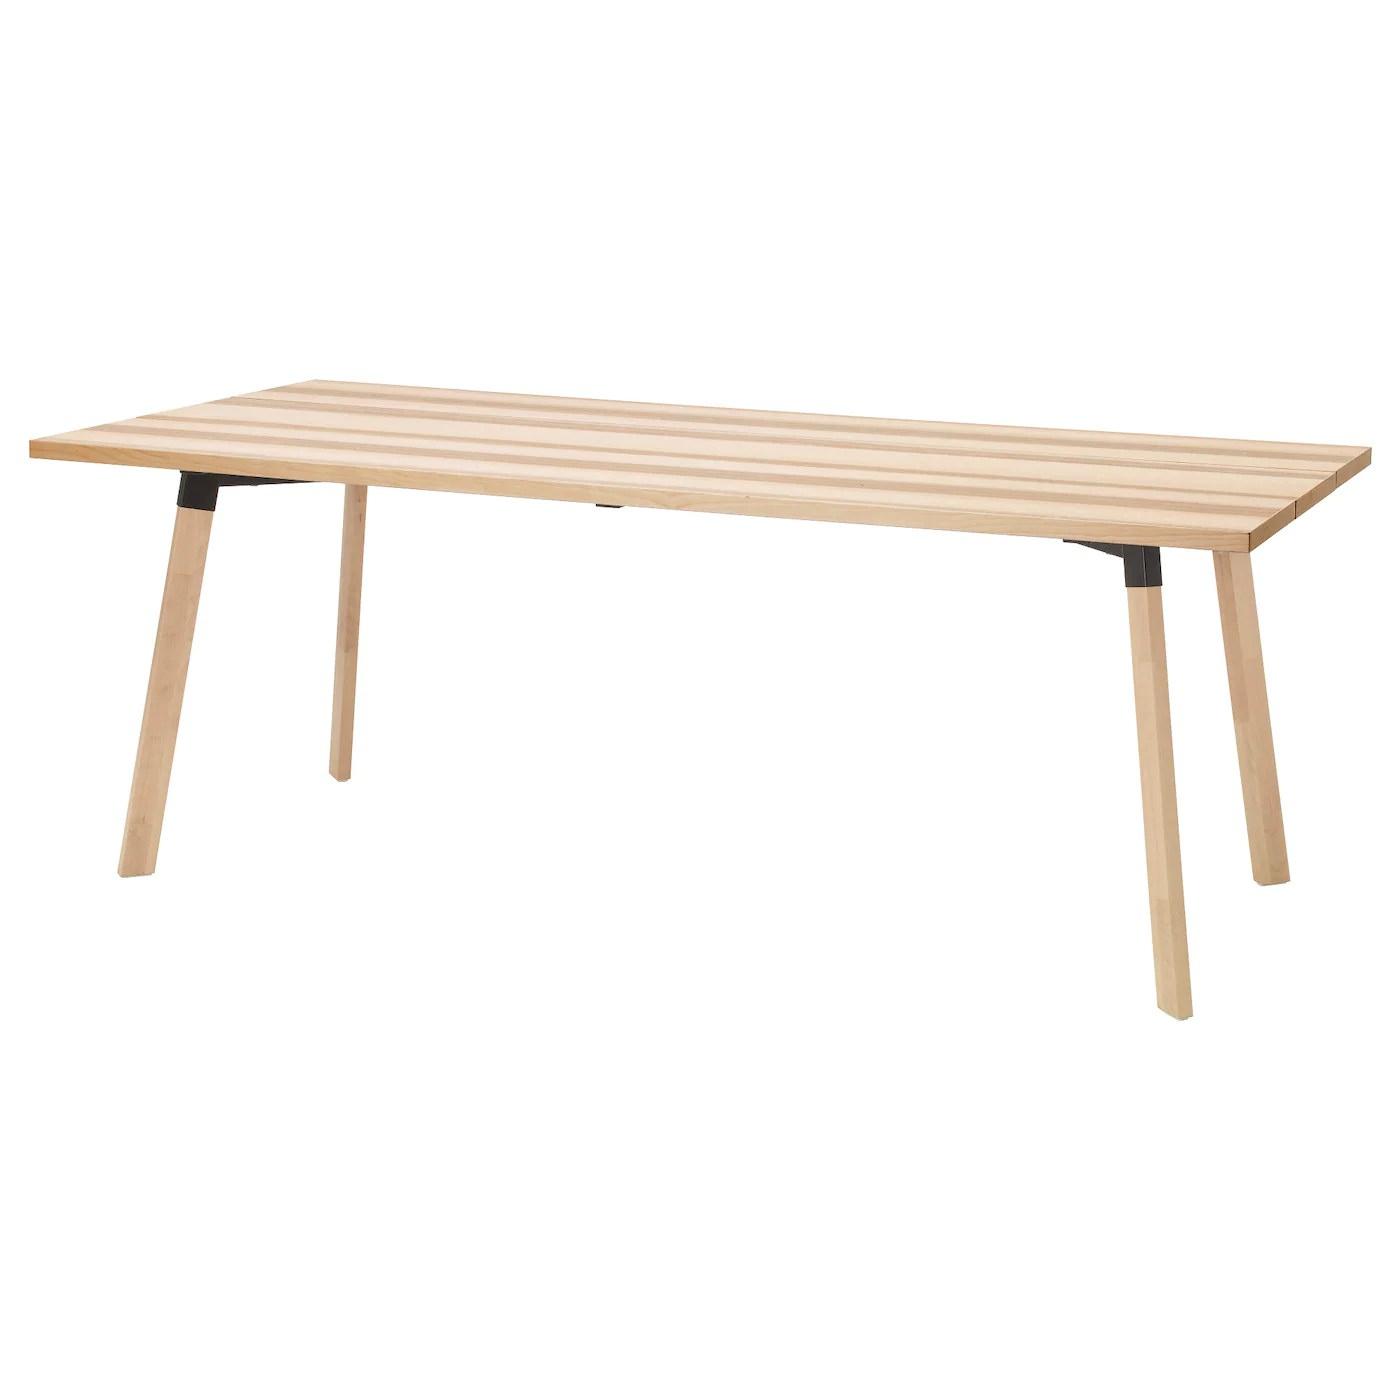 Ikea Bettsofa Ypperlig Ypperlig Table Ash 200 X 90 Cm Ikea